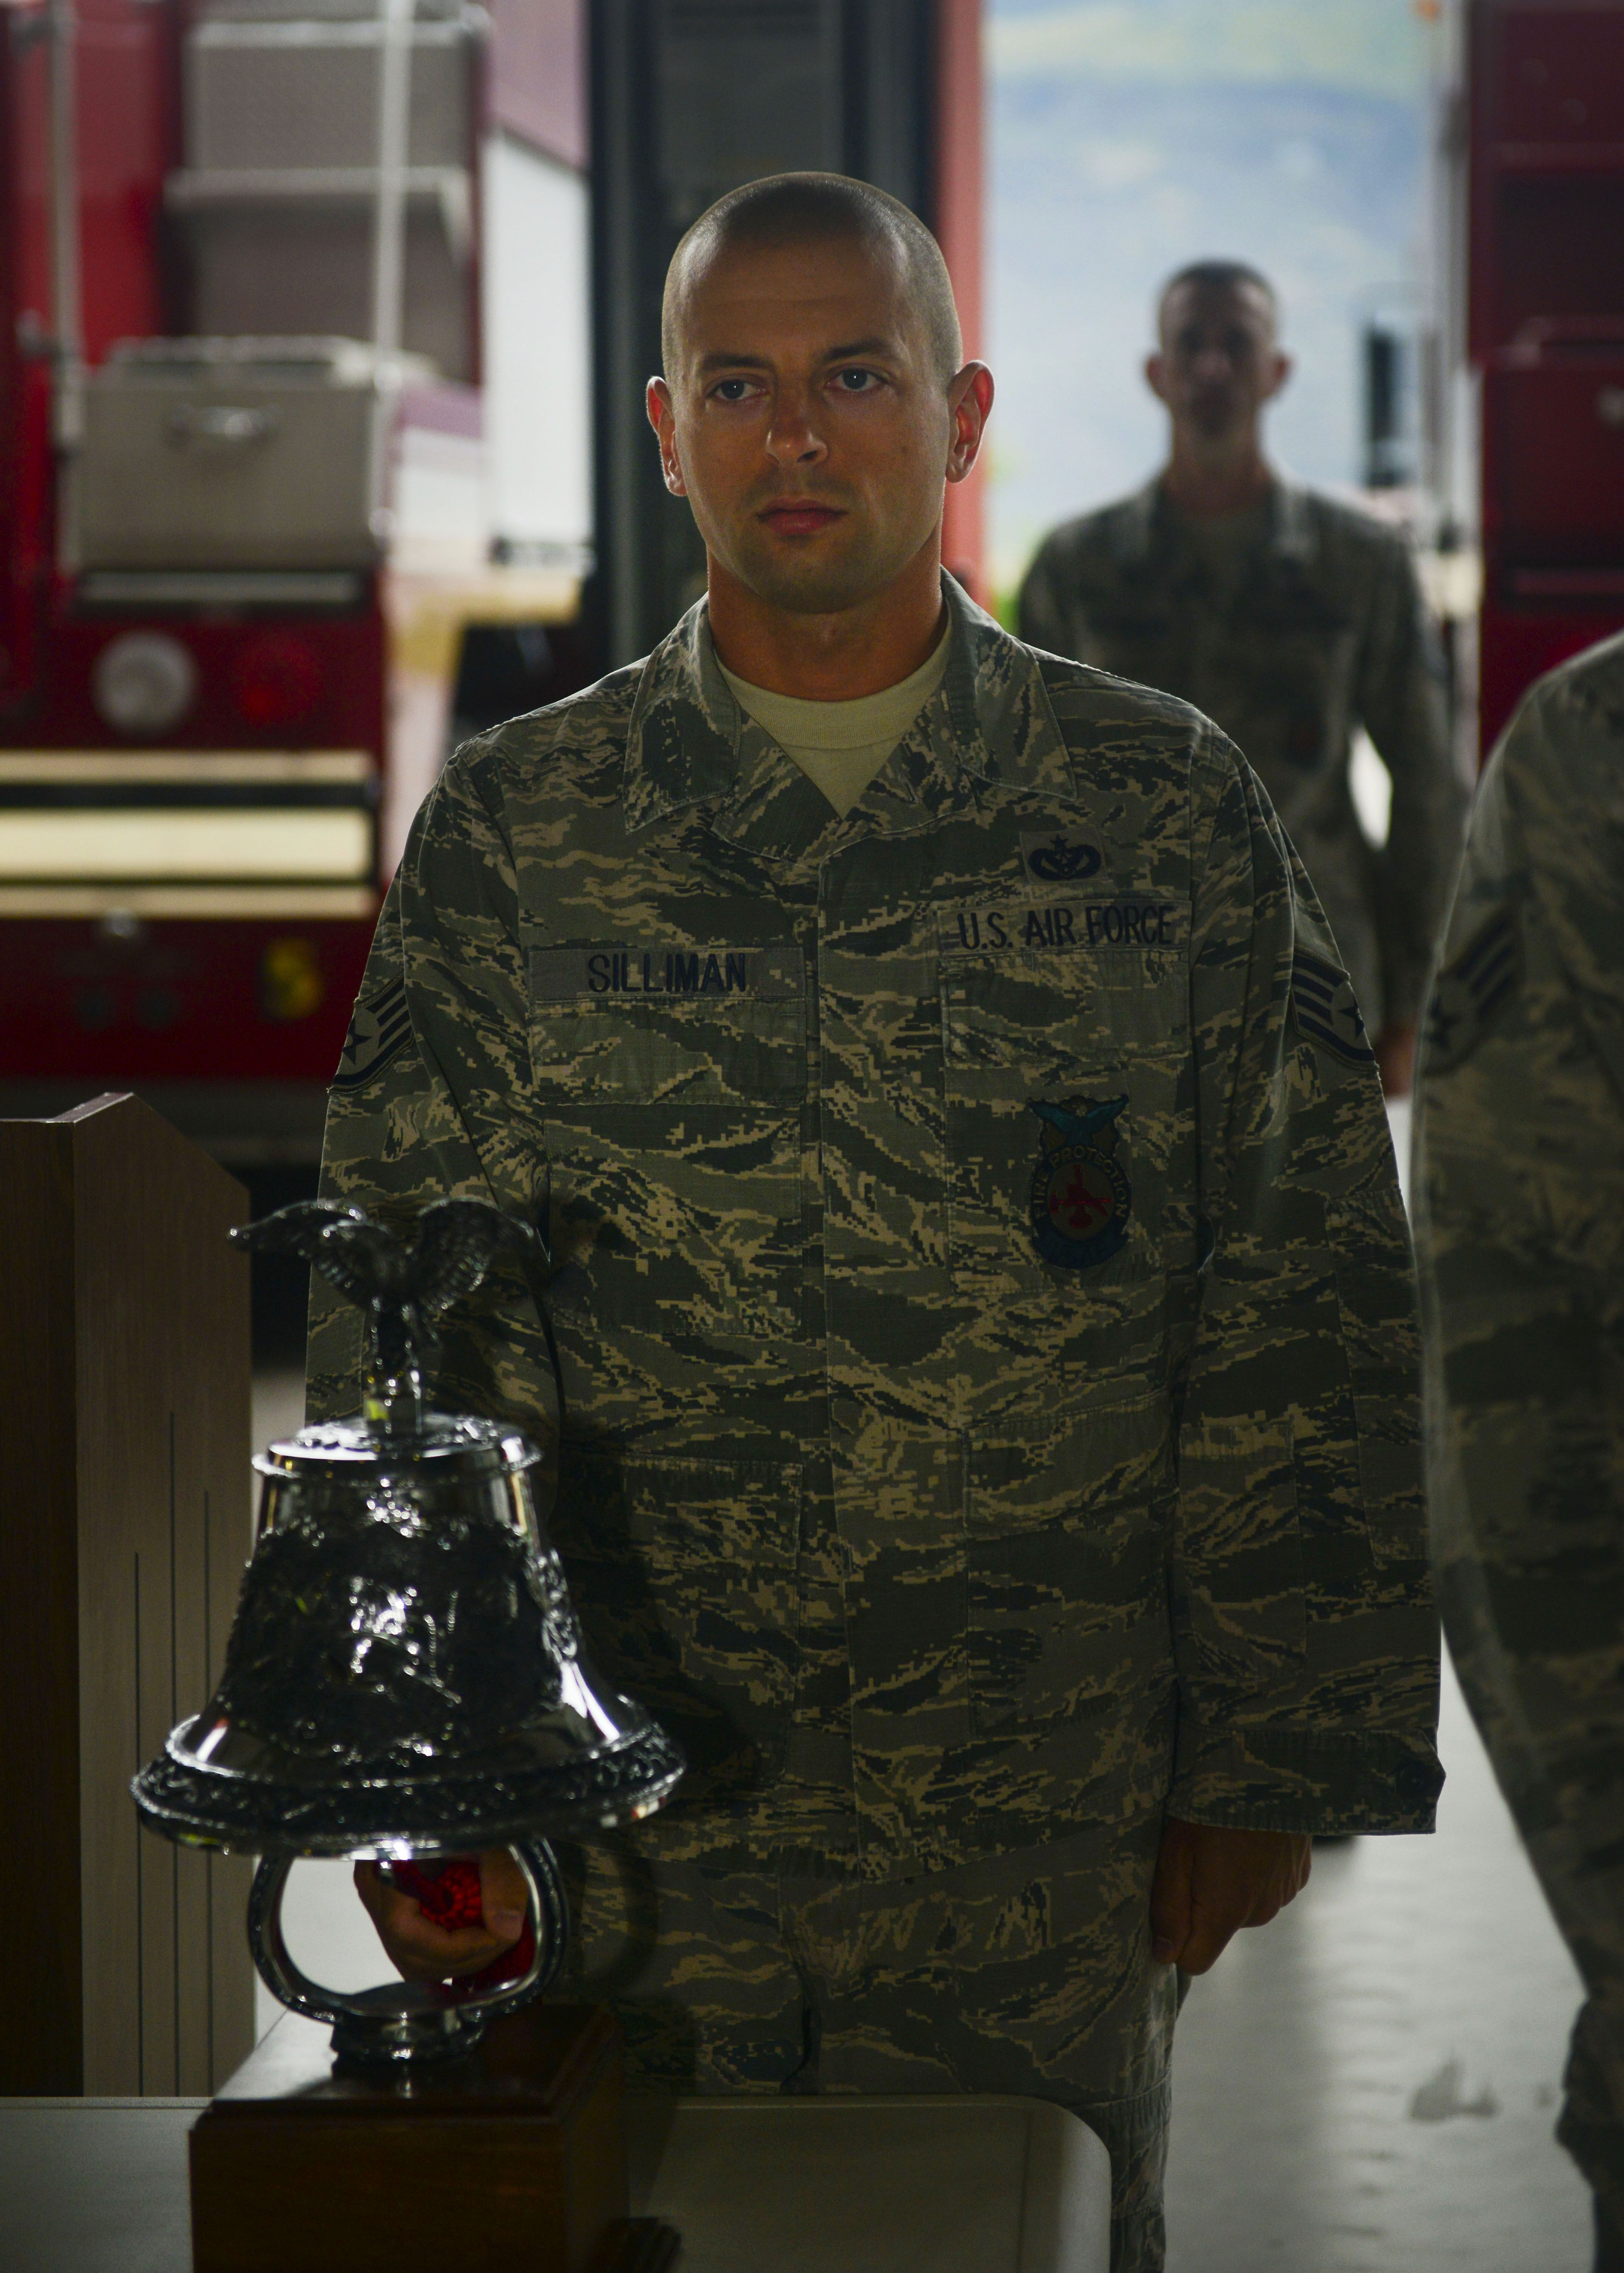 Staff Sgt. Matthew Silliman, 31st Civil Engineer Squadron firefighter, rings the last alarm during a 9/11 Remembrance Ceremony Sept. 11, 2013, at Aviano Air Base, Italy. The last alarm is a tradition of the fire service that honors those who gave their lives in the line of duty. (U.S. Air Force photo/Staff Sgt. Evelyn Chavez)